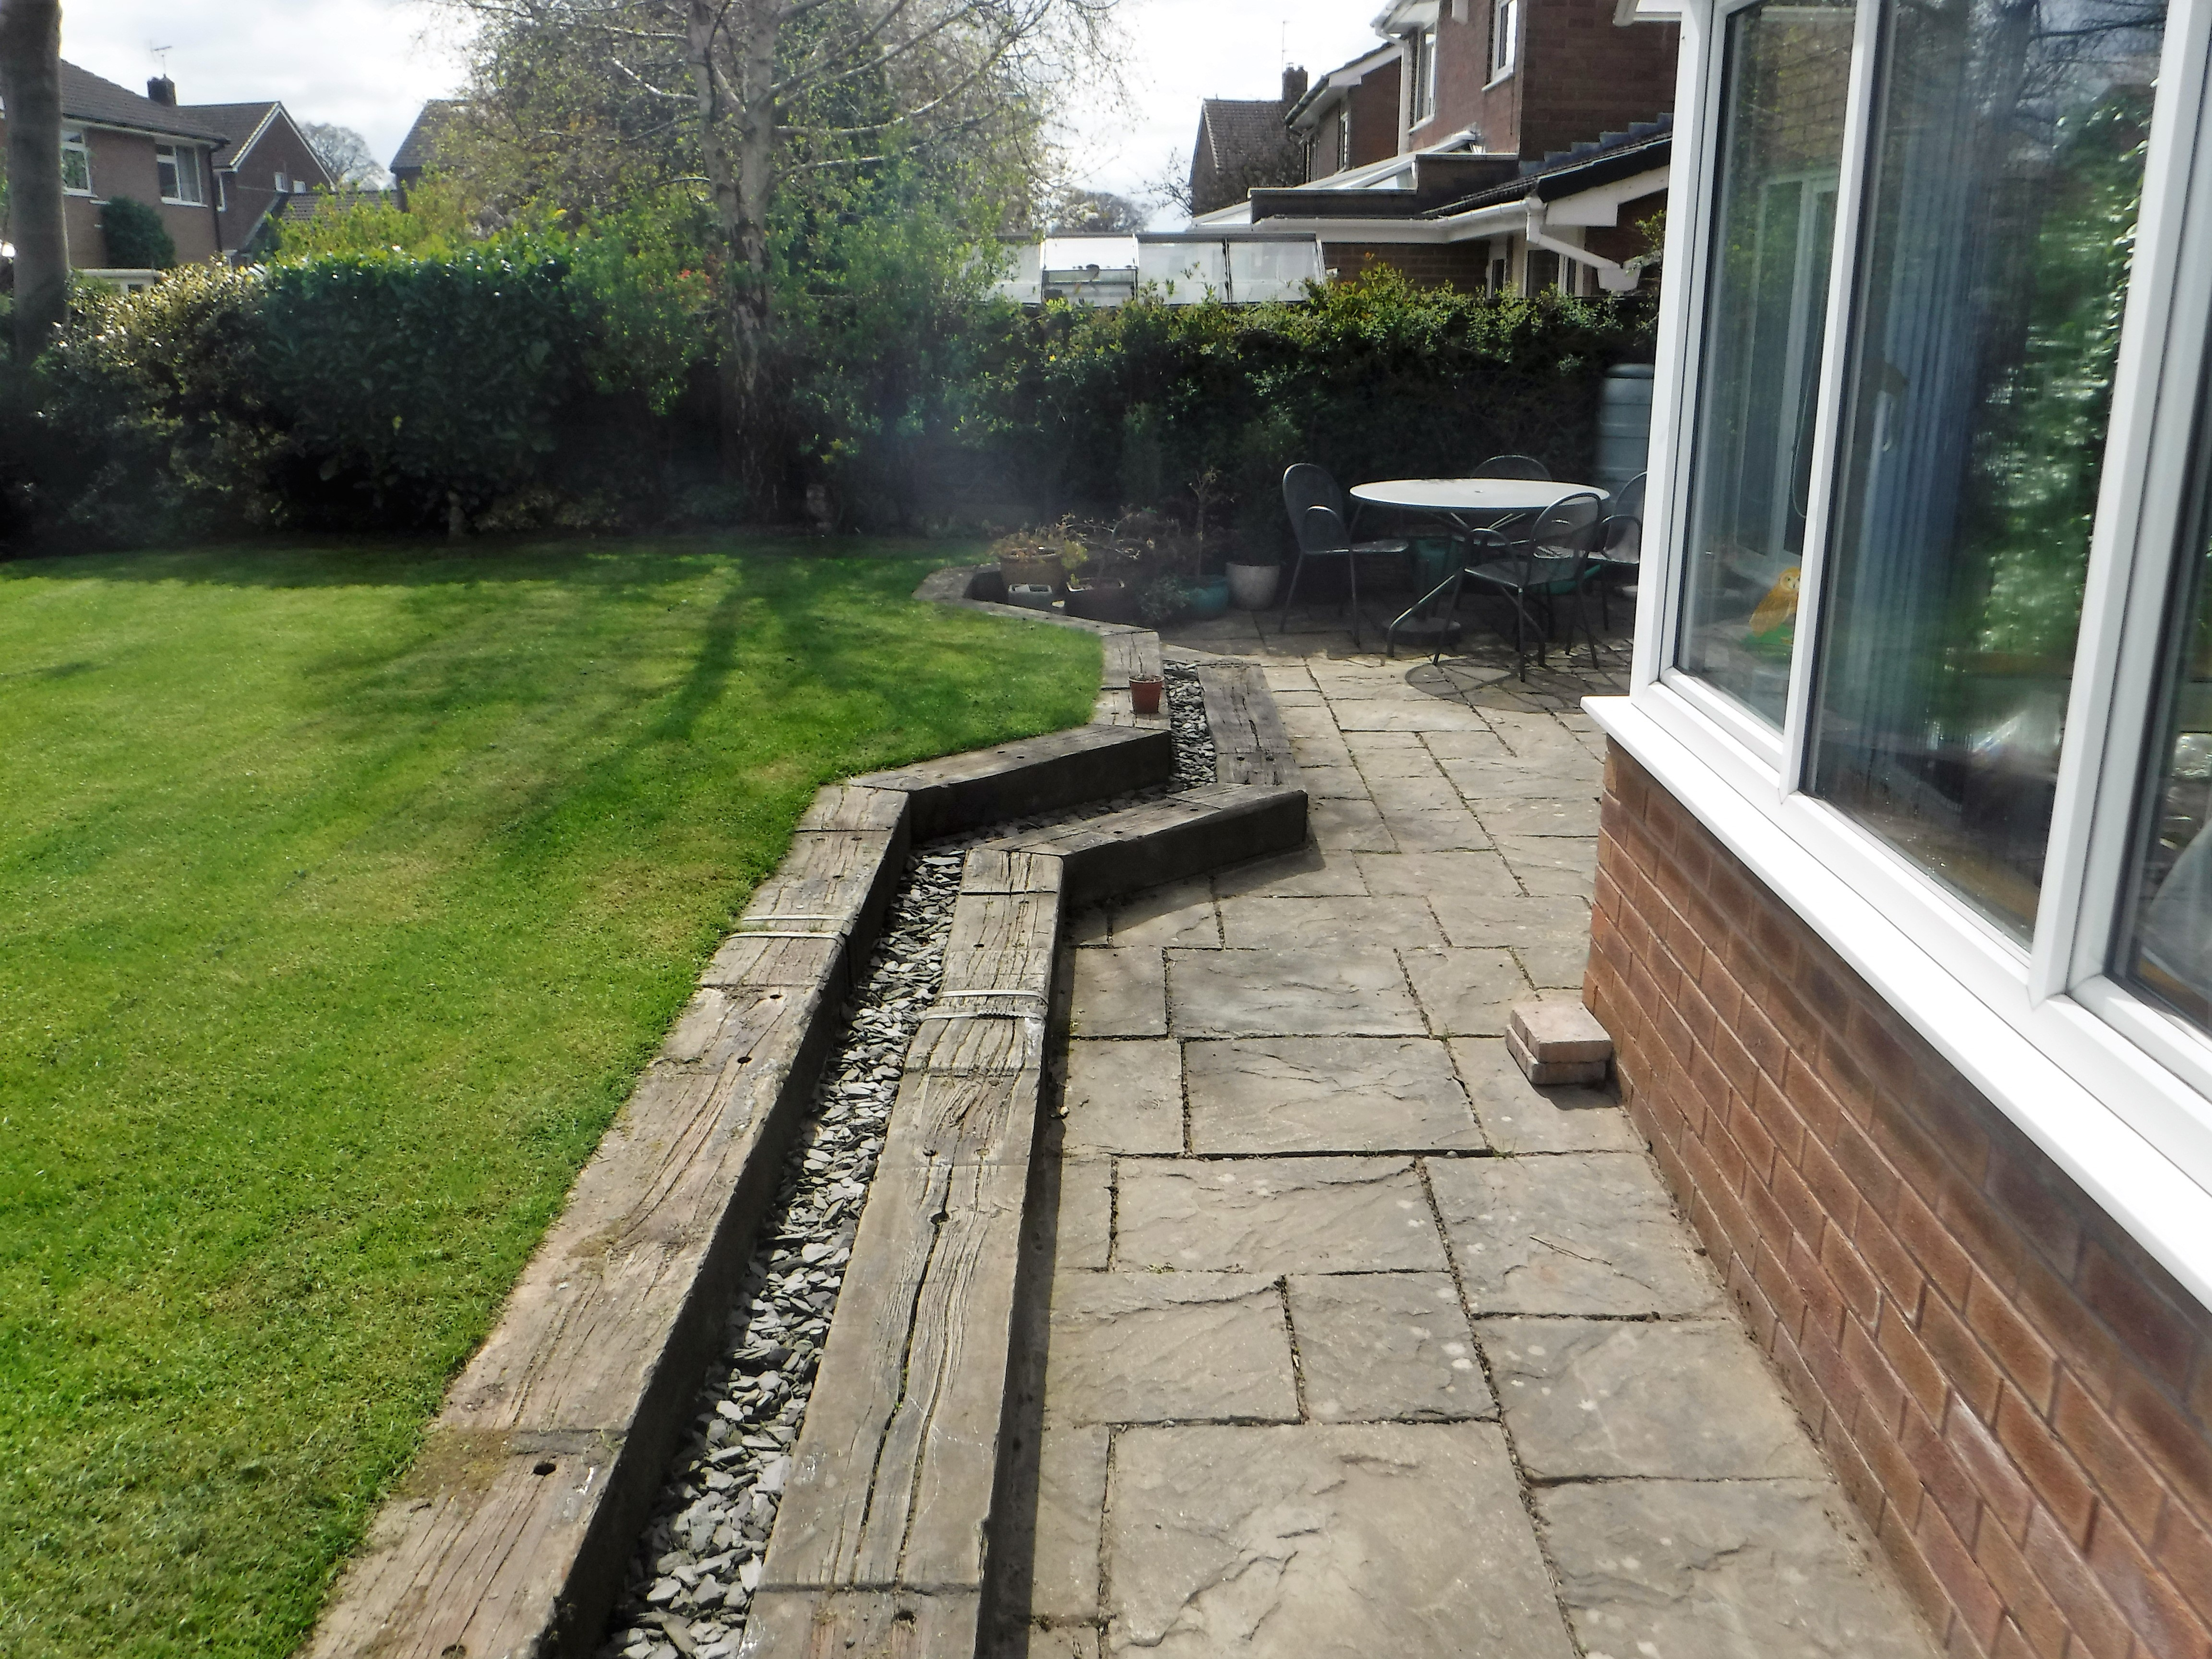 Landscape Gardener in Prestbury - Turfing and Wooden Sleeper Steps